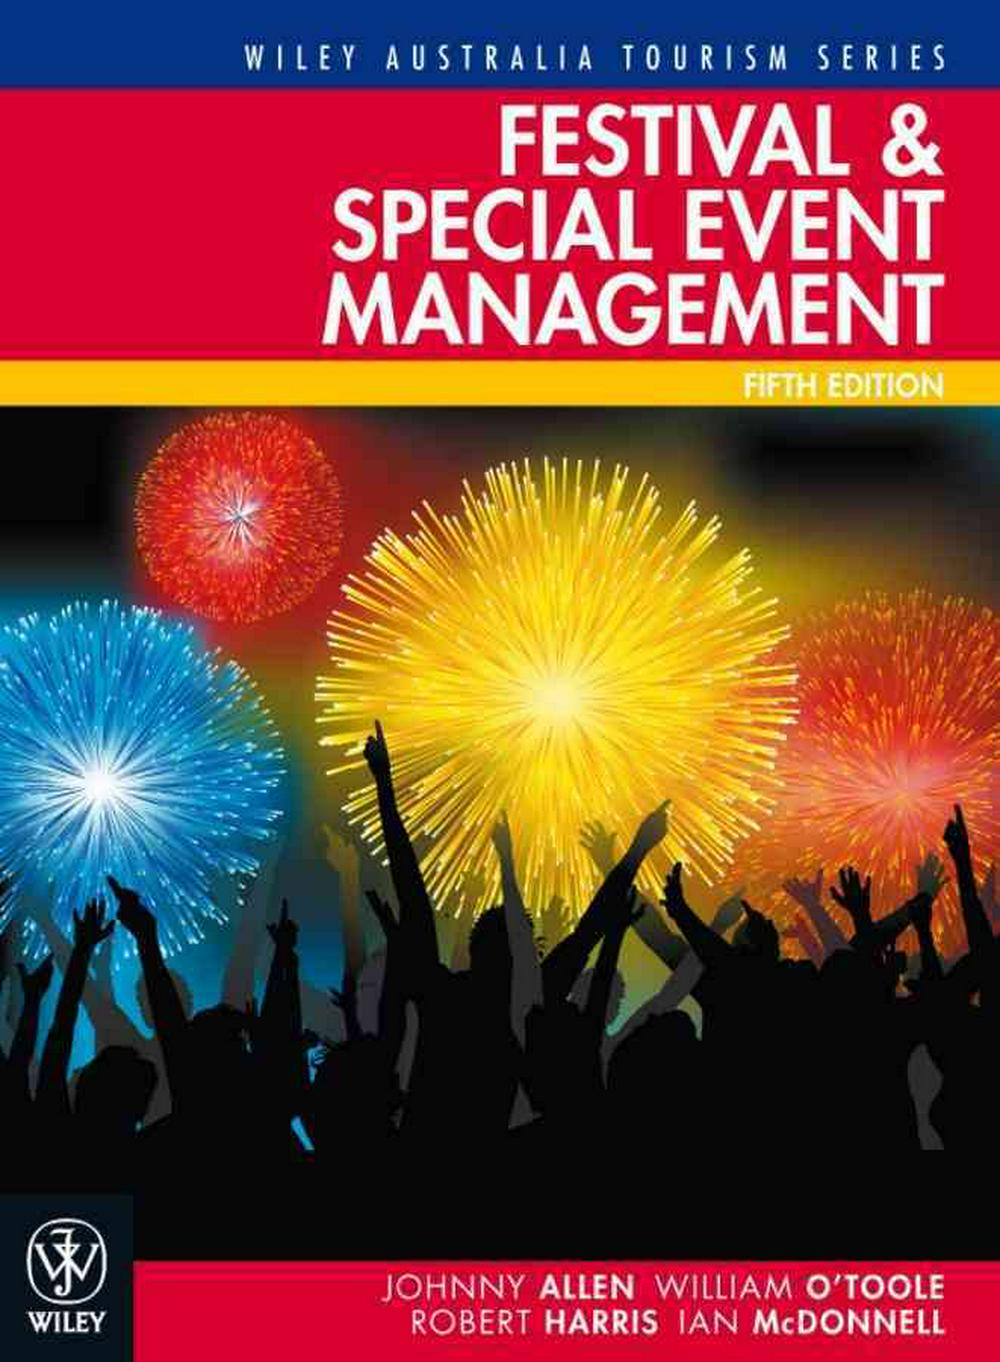 Festival & Special Event Management (Fifth Edition)